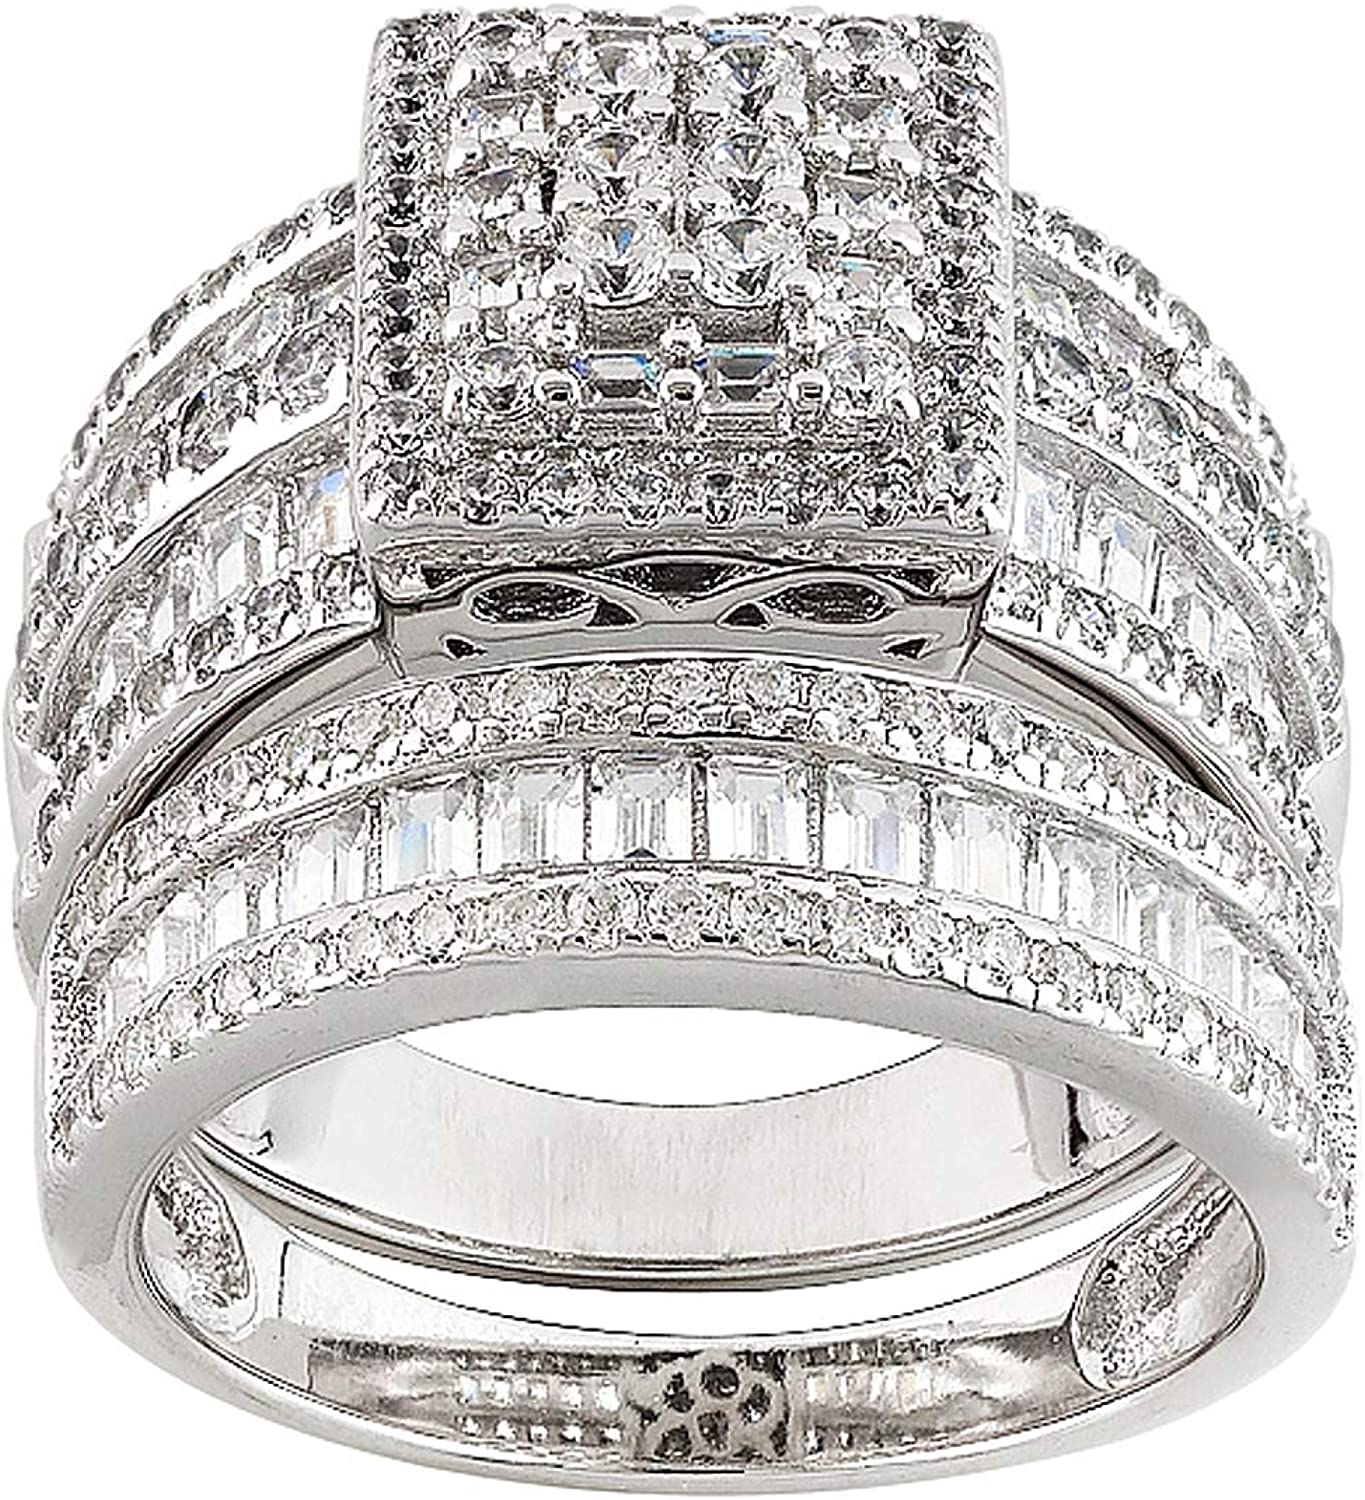 White CZ Open Flower Cluster Bar Leaf Ring .925 Sterling Silver Band Sizes 4-10